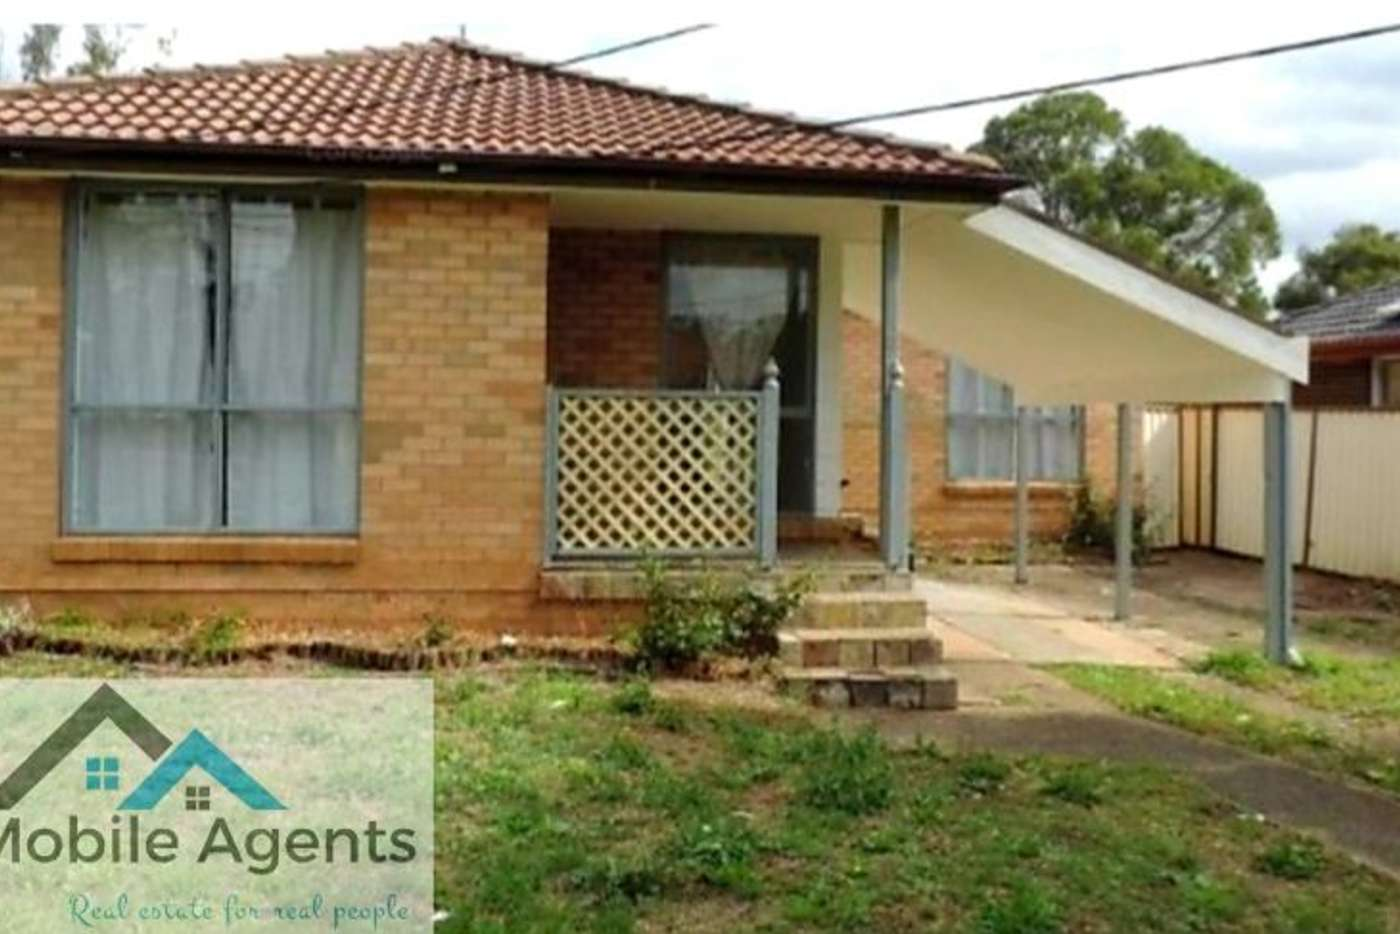 Main view of Homely house listing, 27 Derwent street, Mount Druitt NSW 2770